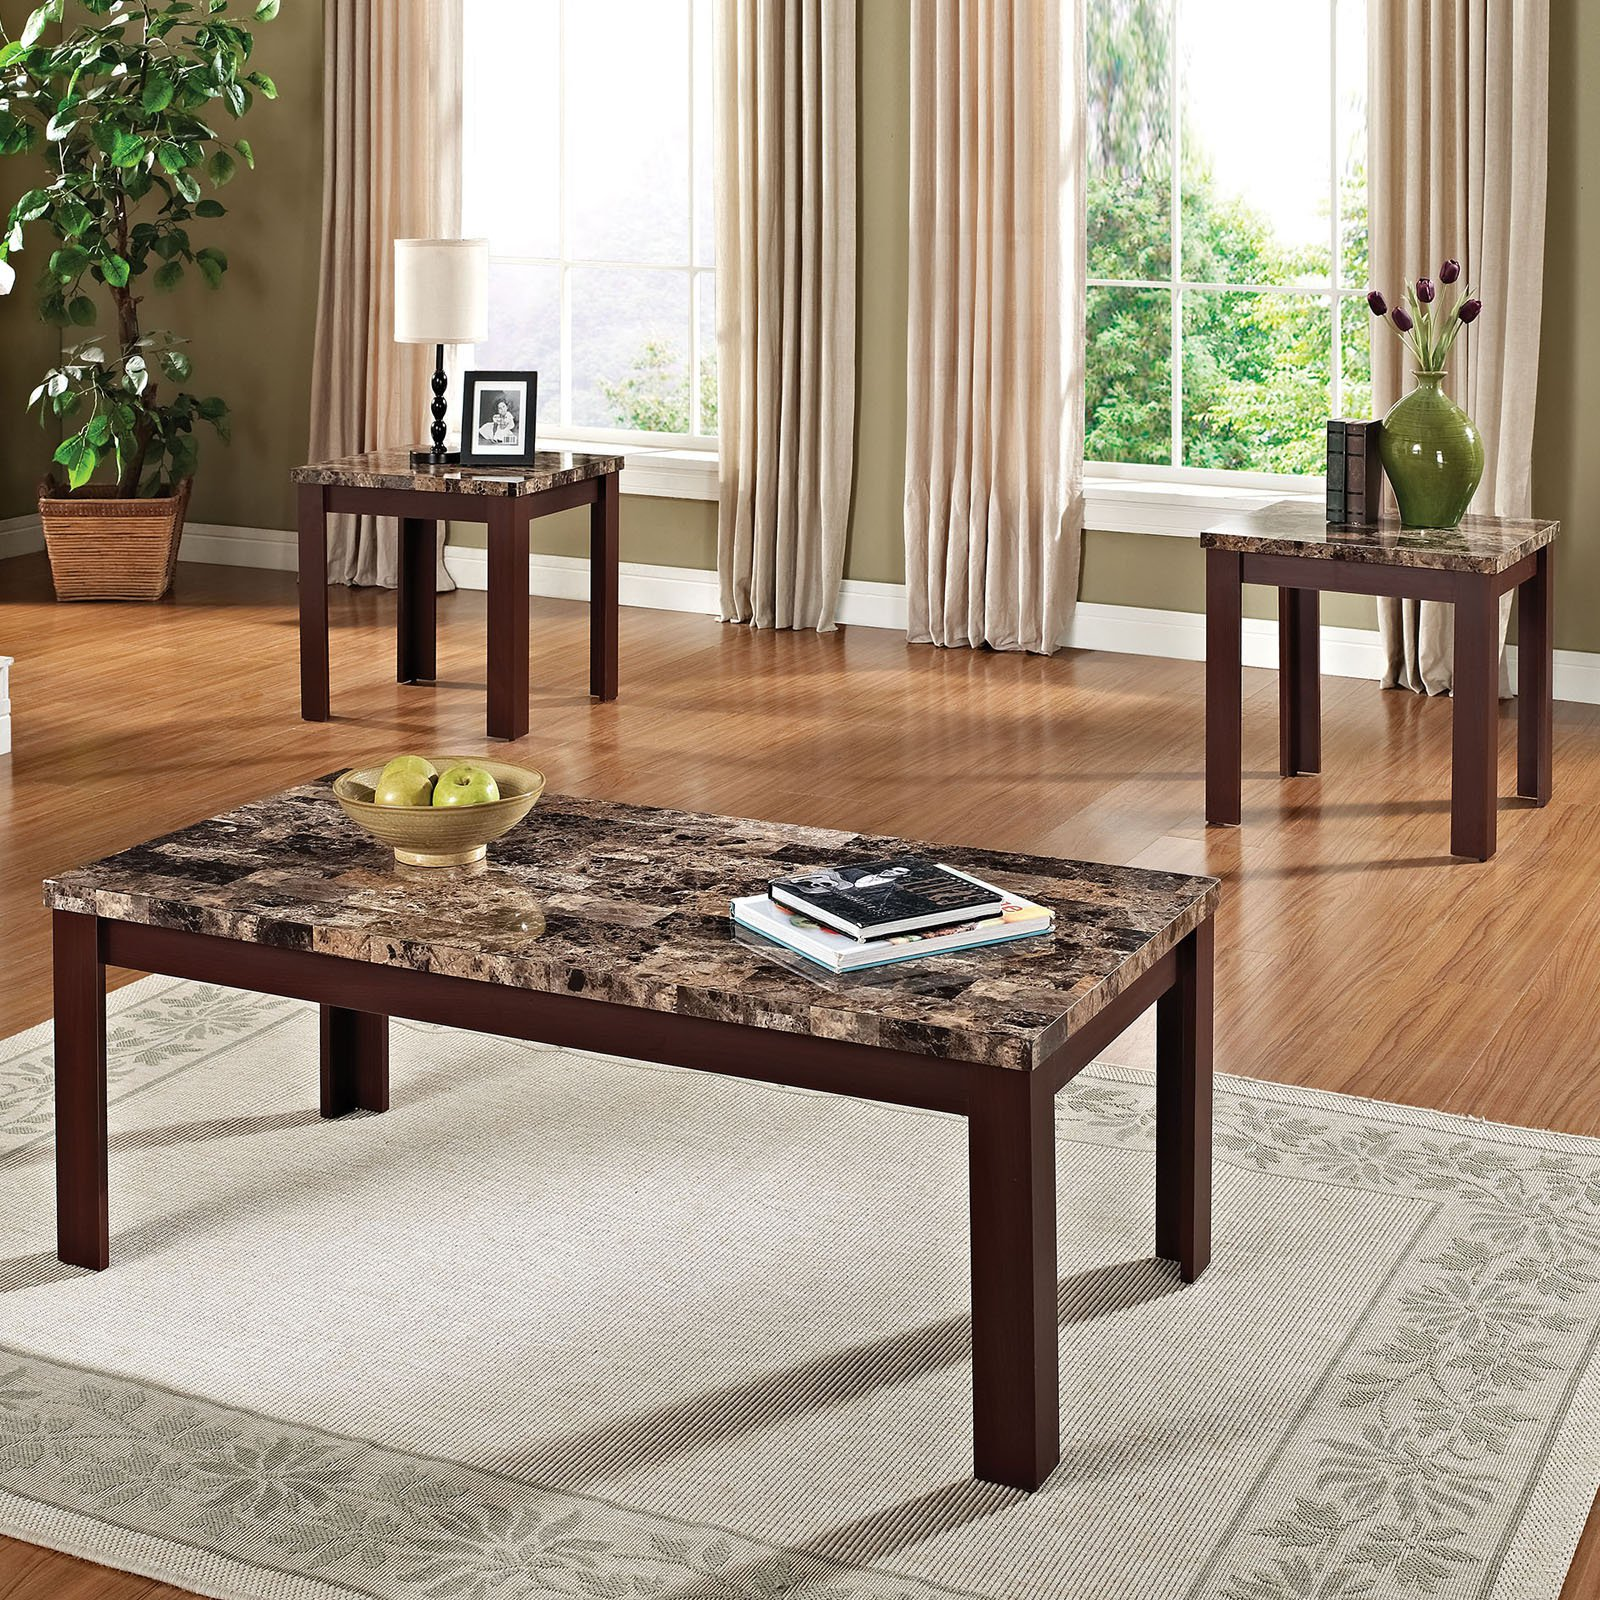 acme piece finely coffee and end table set dark brown faux marble accent black feet linens for inch round furniture pieces hobby lobby lamps clear glass nest tables small laptop